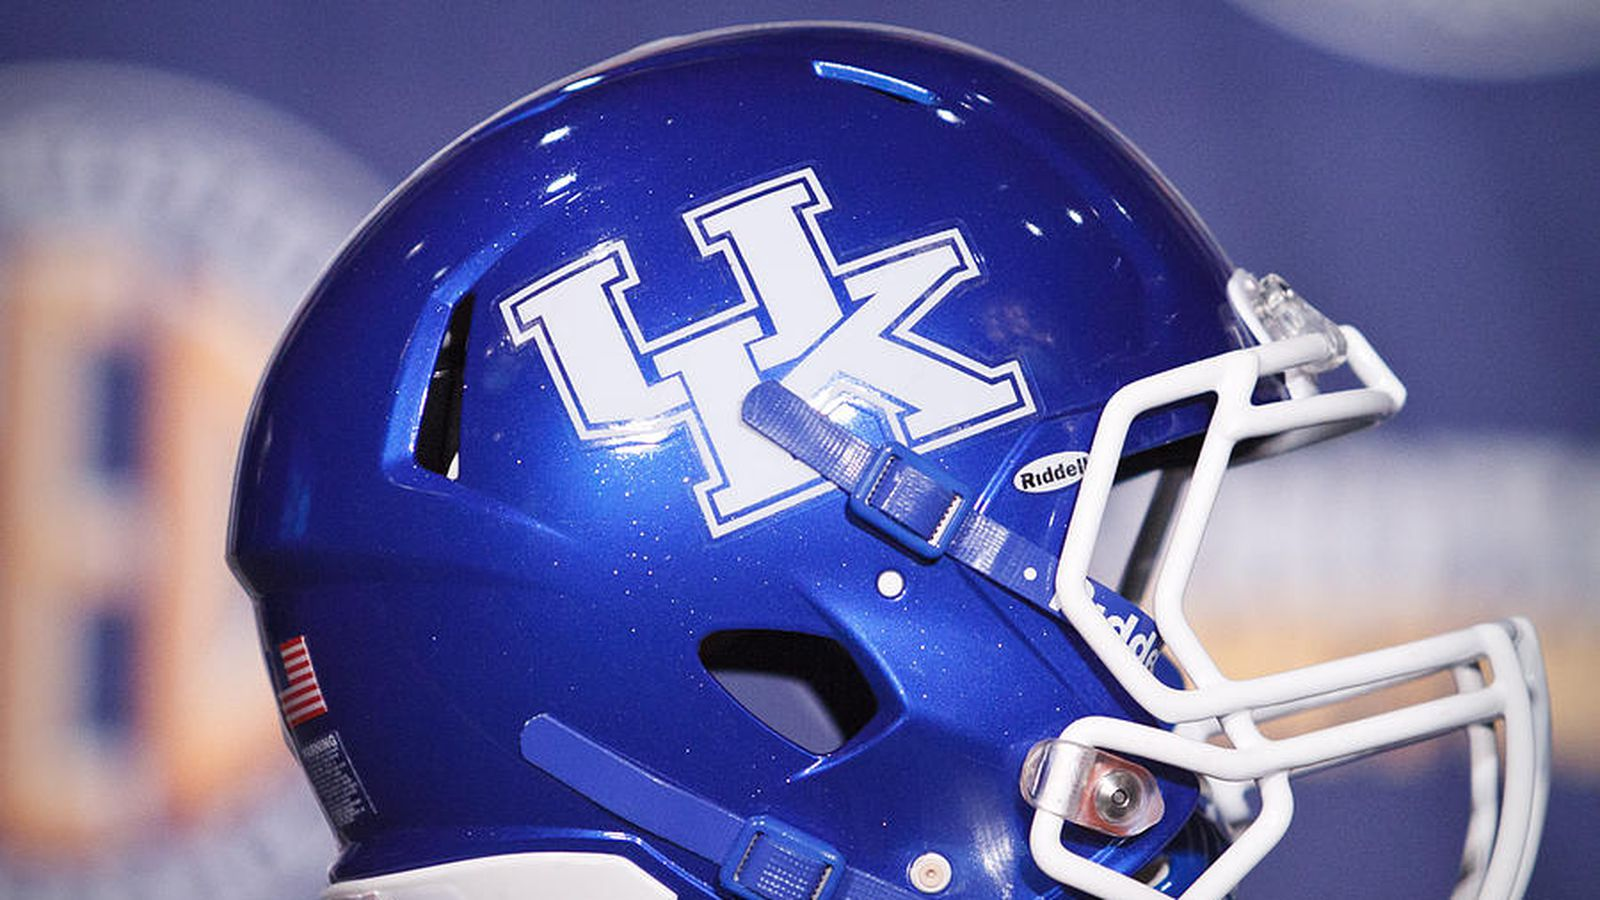 Get the latest Kentucky Wildcats Football news photos rankings lists and more on Bleacher Report